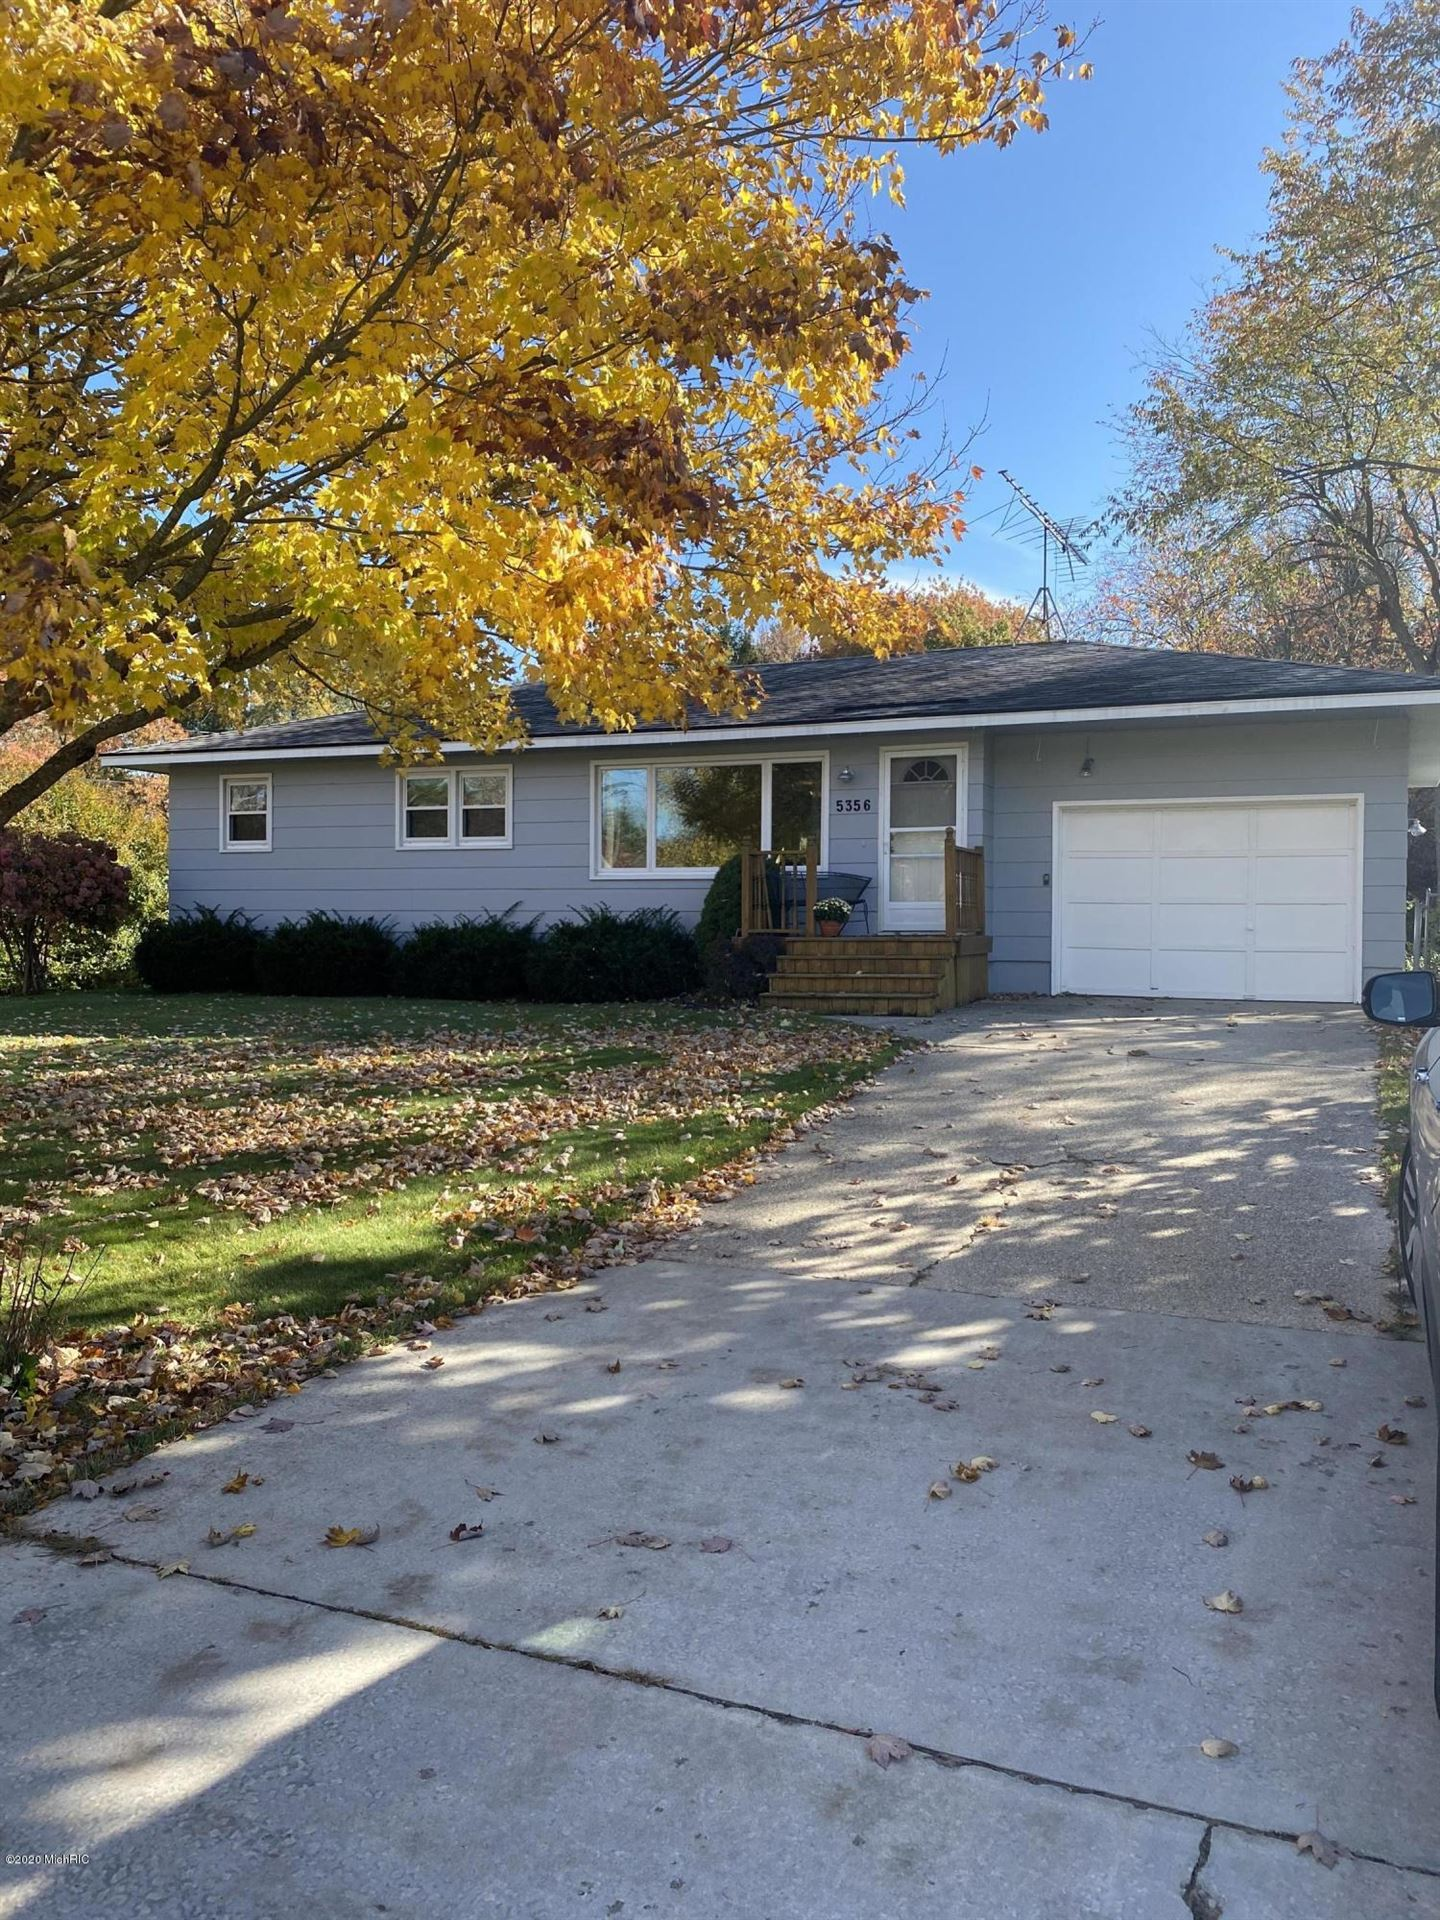 5356 Hillview Drive, Muskegon, MI 49441 - MLS#: 20043124